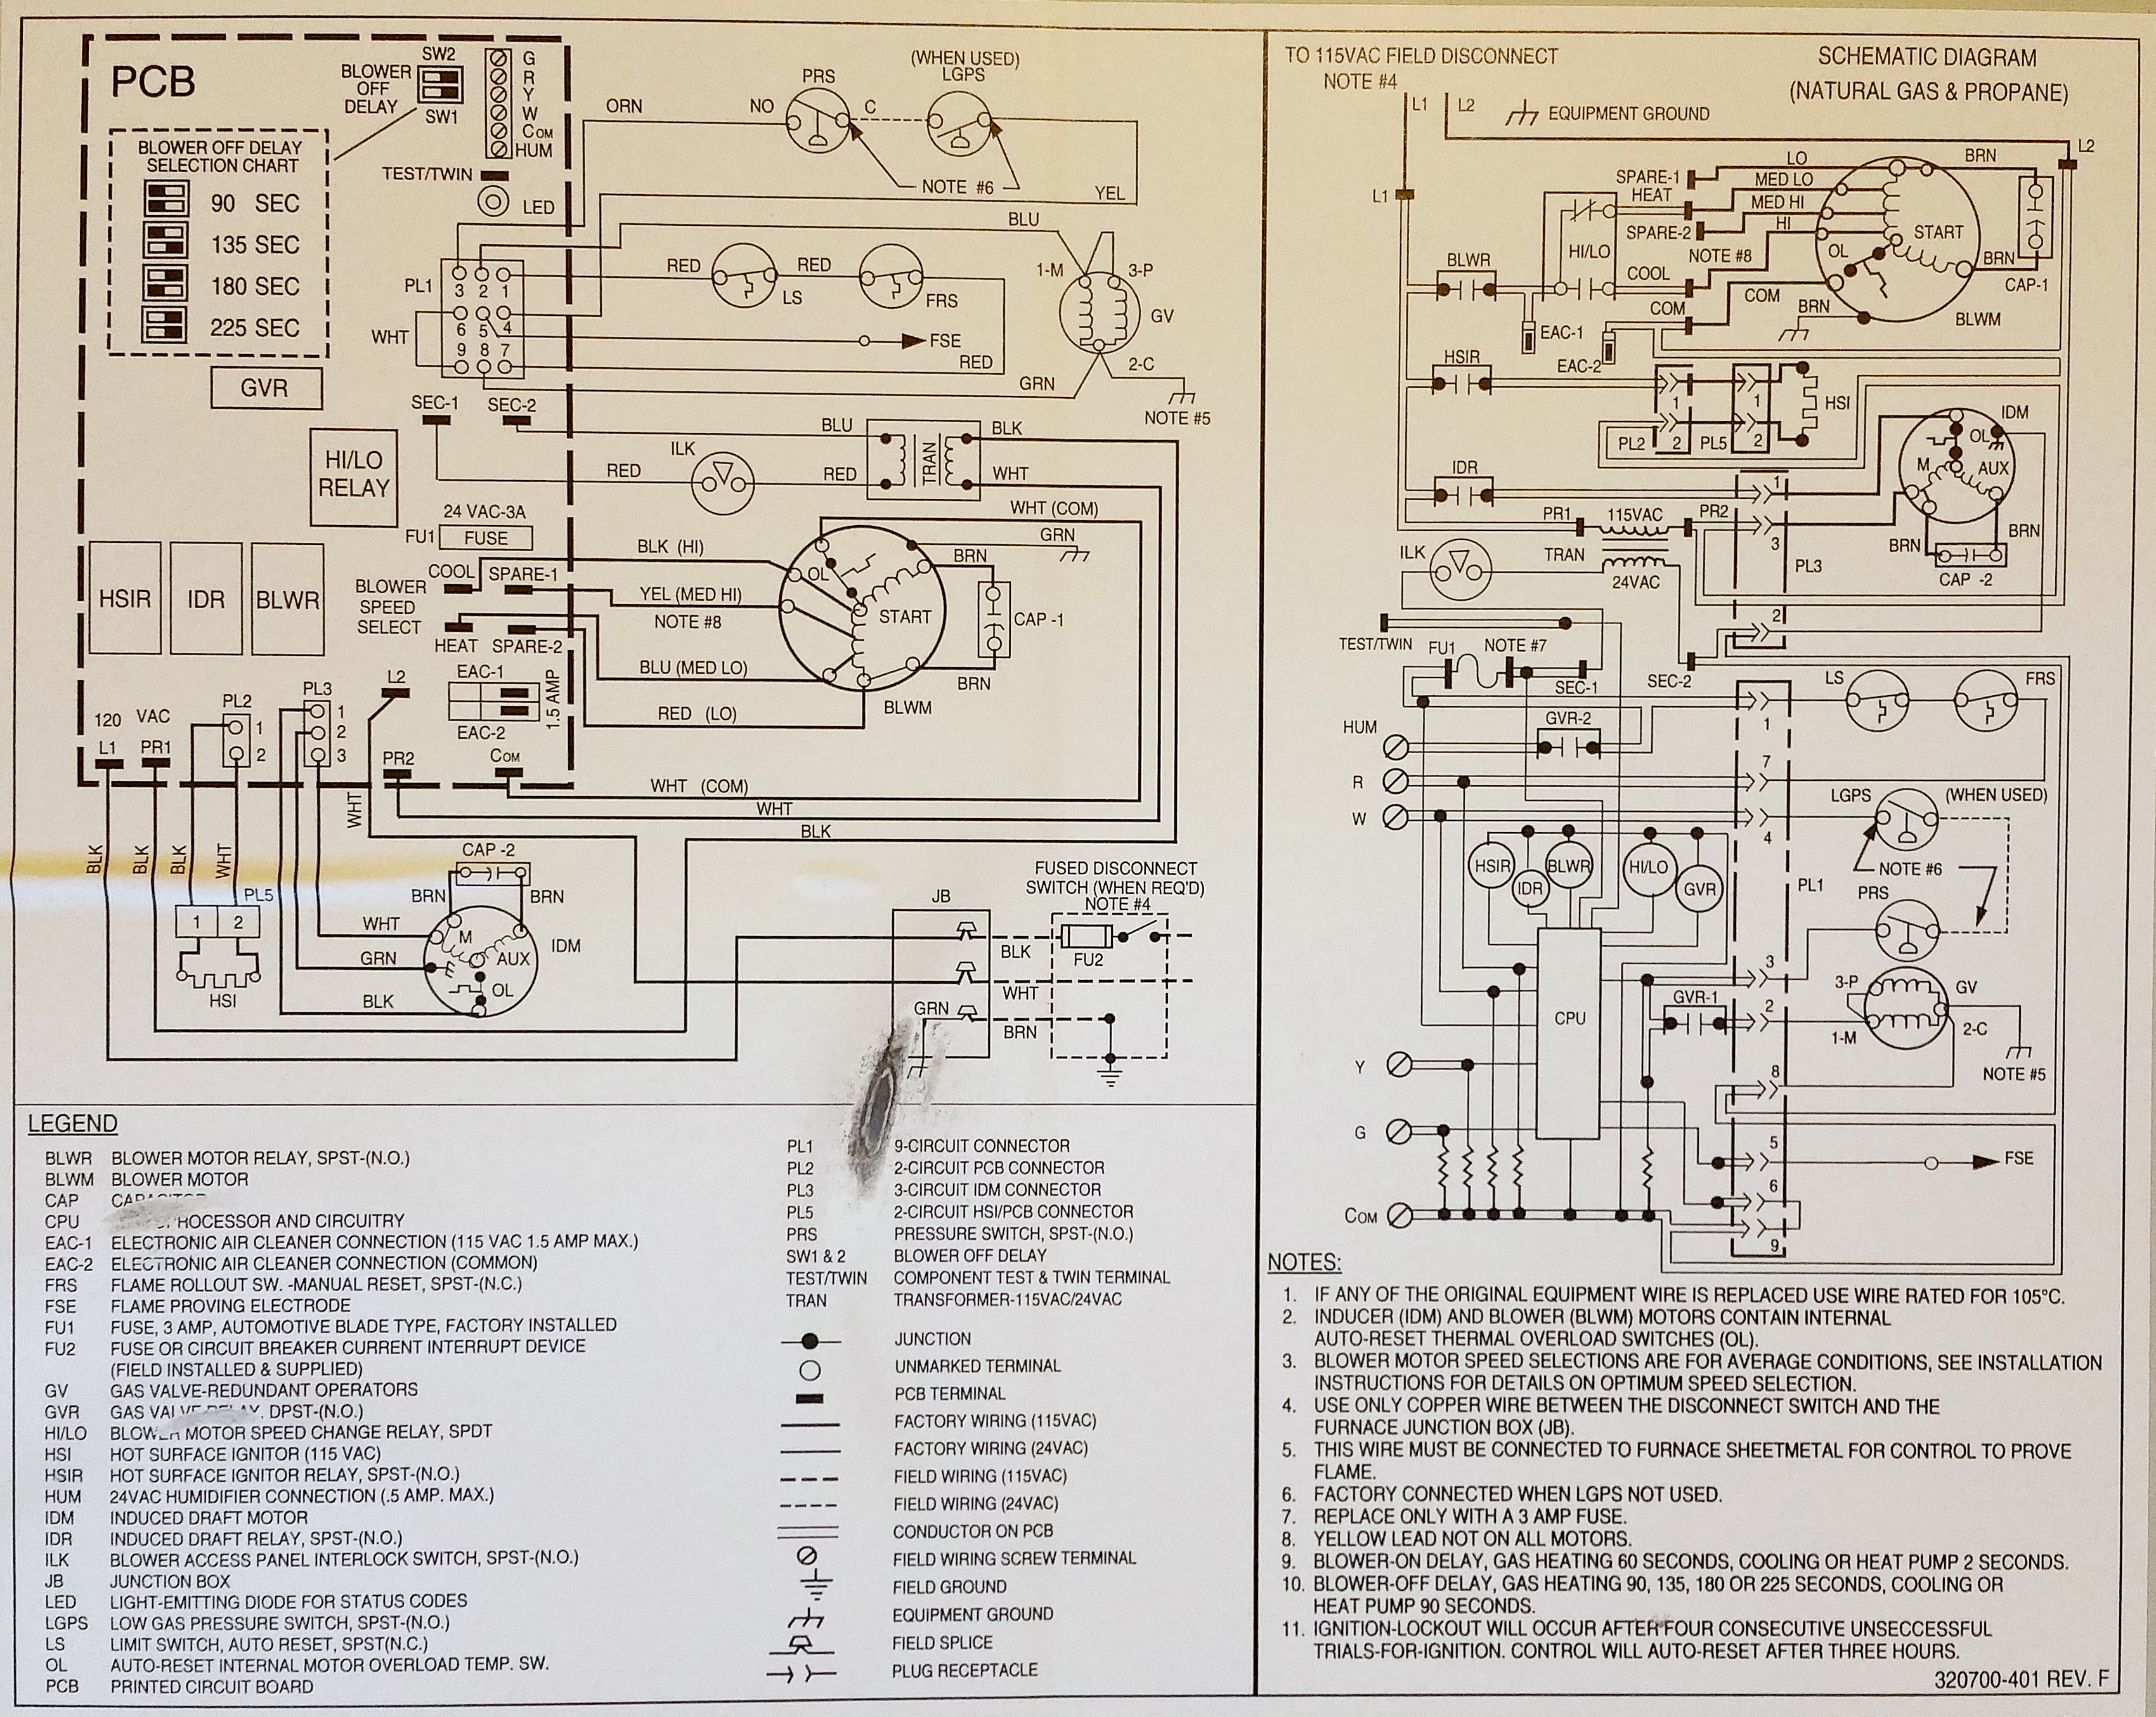 still not working carrier weathermaker 9200 mxaCarrier Weathermaker 9200 Wiring Diagram Share The Knownledge #1